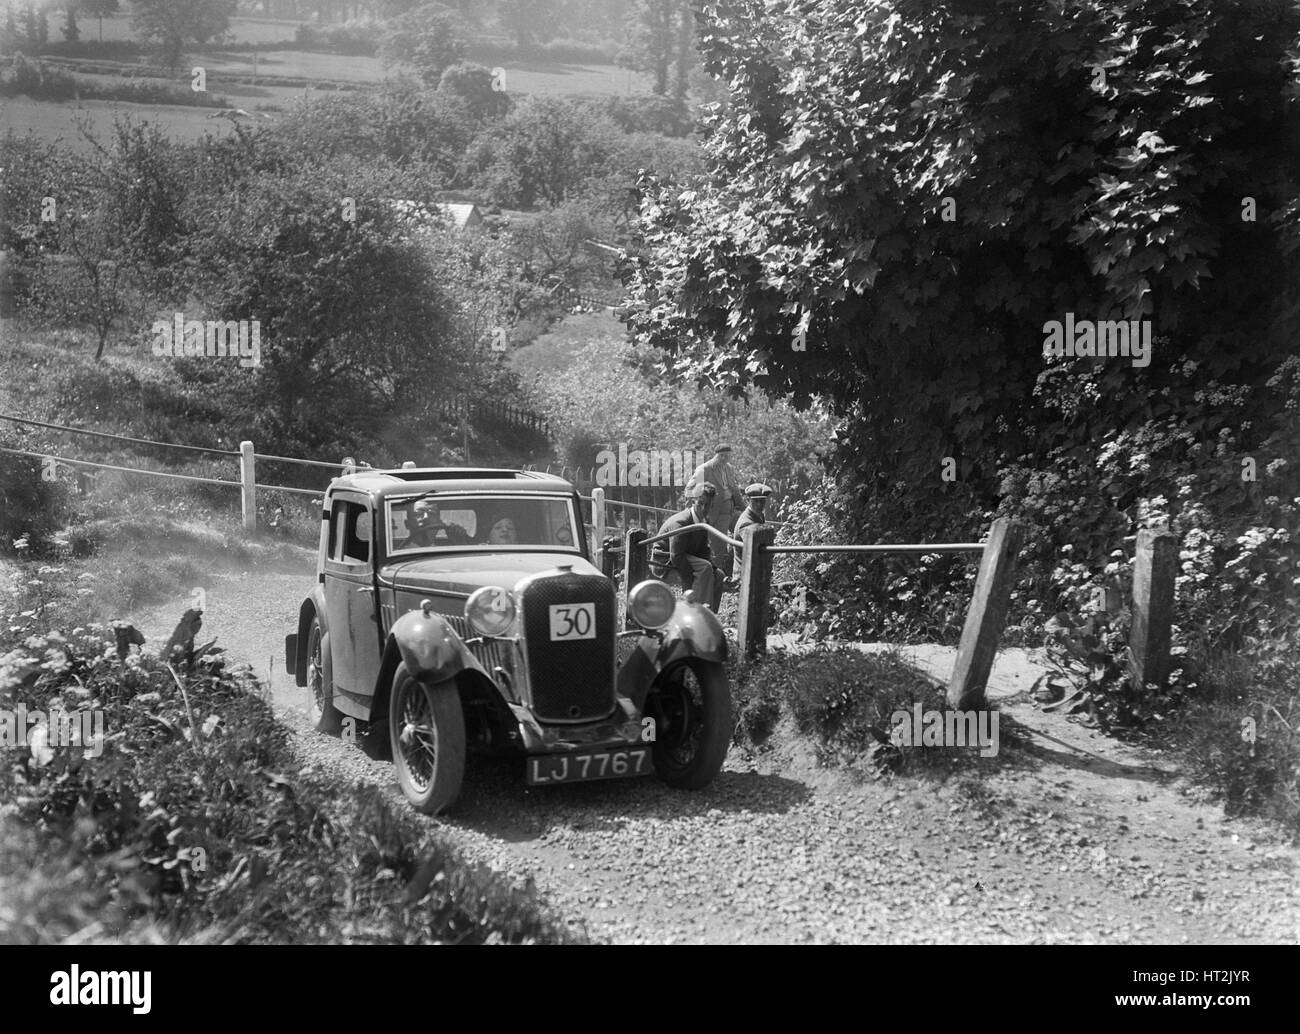 1933 Singer coupe taking part in a West Hants Light Car Club Trial, Ibberton Hill, Dorset, 1930s. Artist: Bill Brunell. - Stock Image